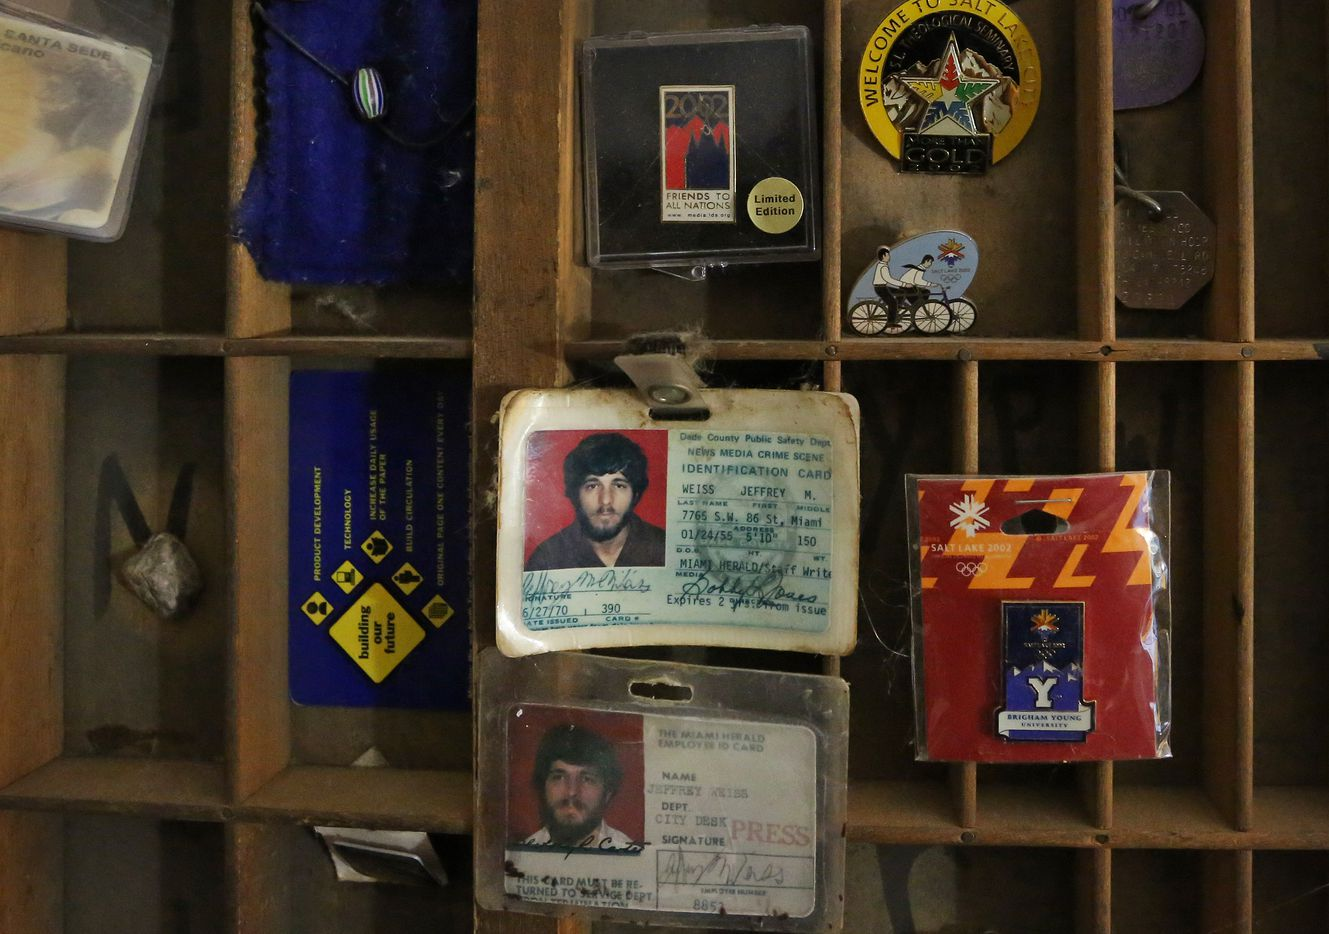 A printer's tray holds press ID cards and other mementos from Jeffrey Weiss' career at his home in Dallas.